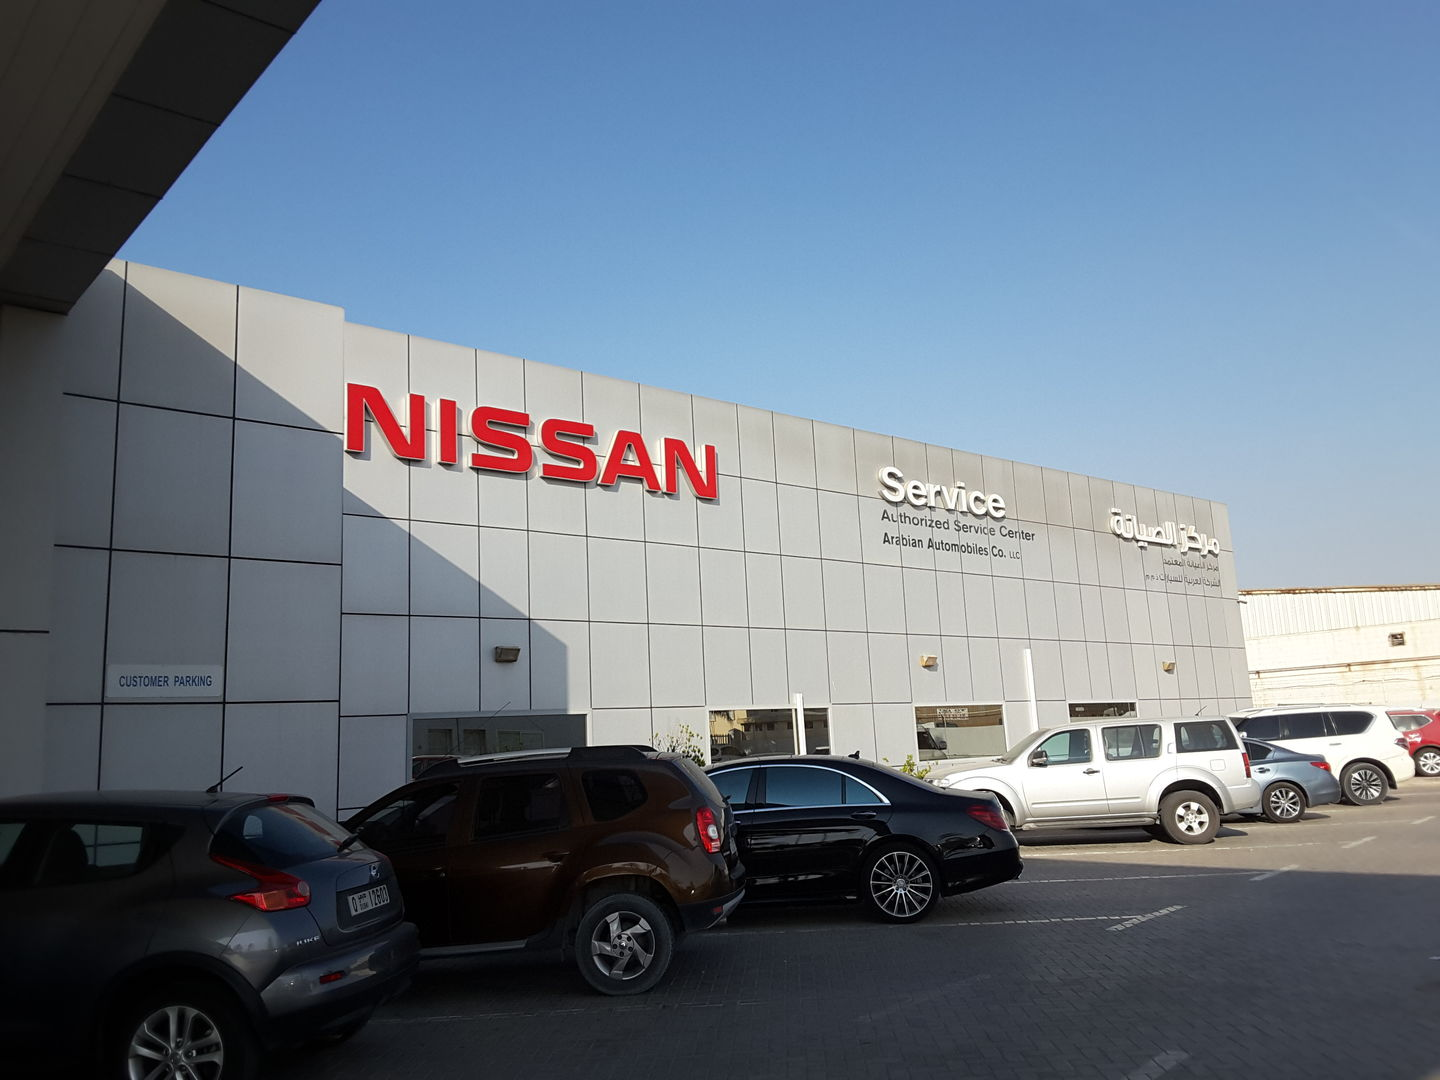 HiDubai-business-arabian-automobiles-nissan-service-centre-transport-vehicle-services-car-assistance-repair-ras-al-khor-industrial-1-dubai-2